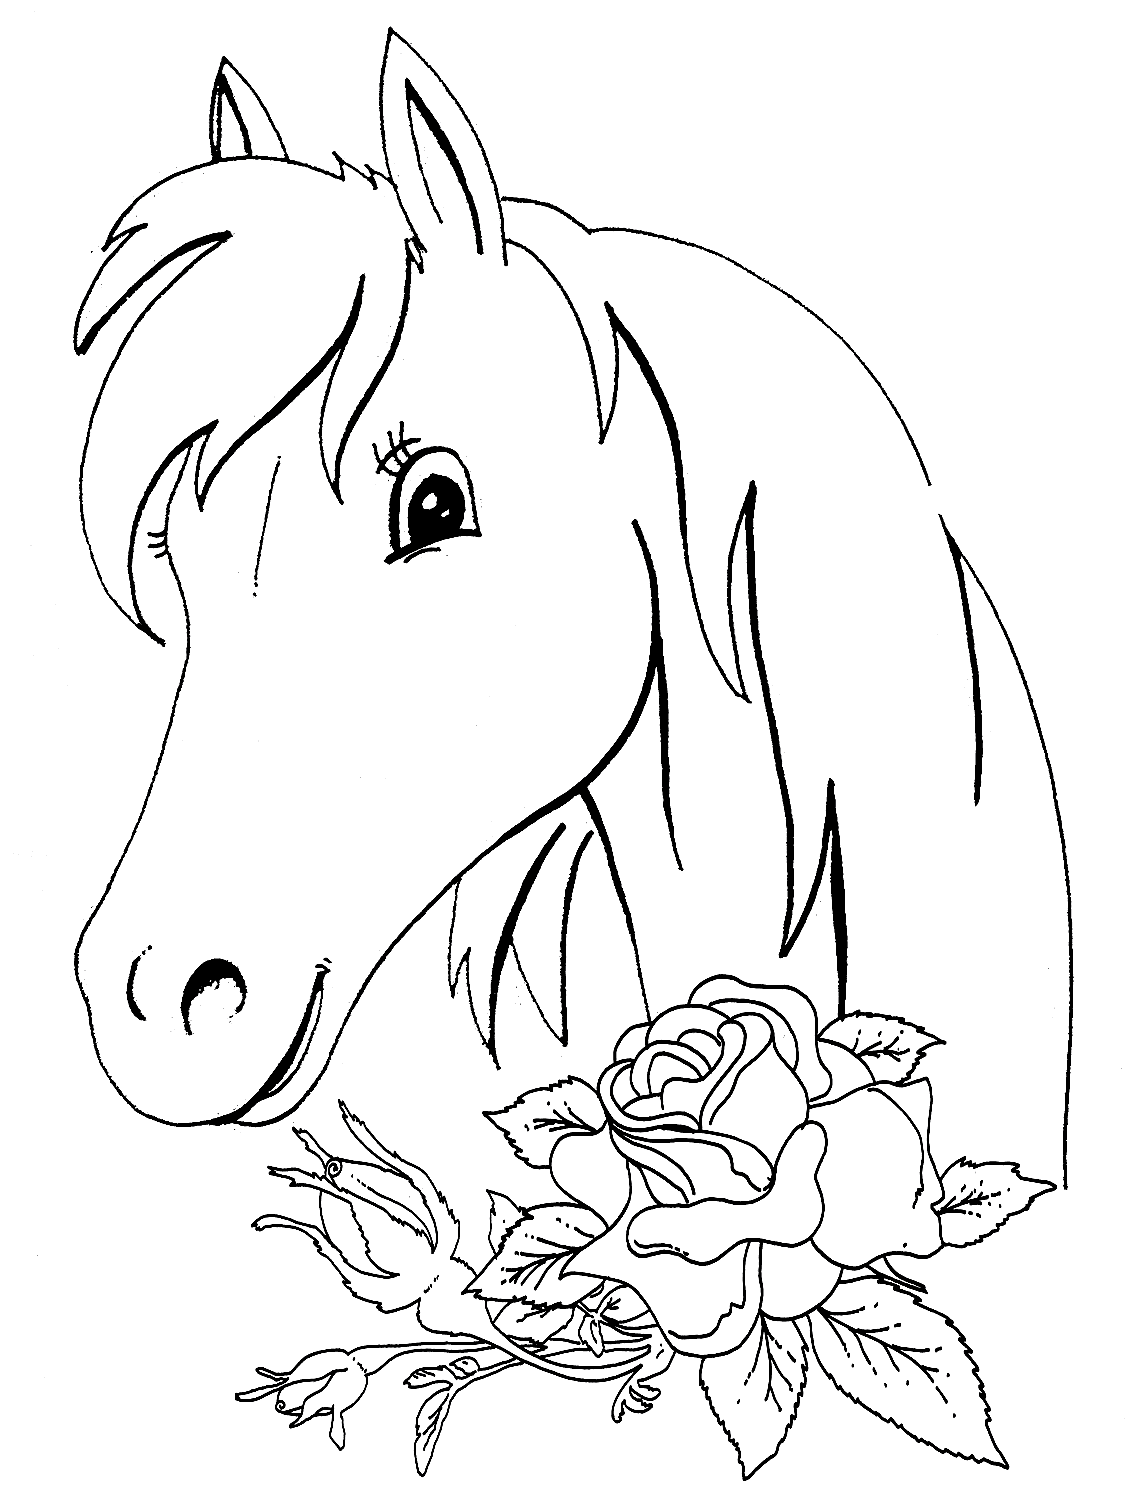 coloring pages of horses and ponies animal coloring pages horse coloring page coloring of coloring ponies pages and horses